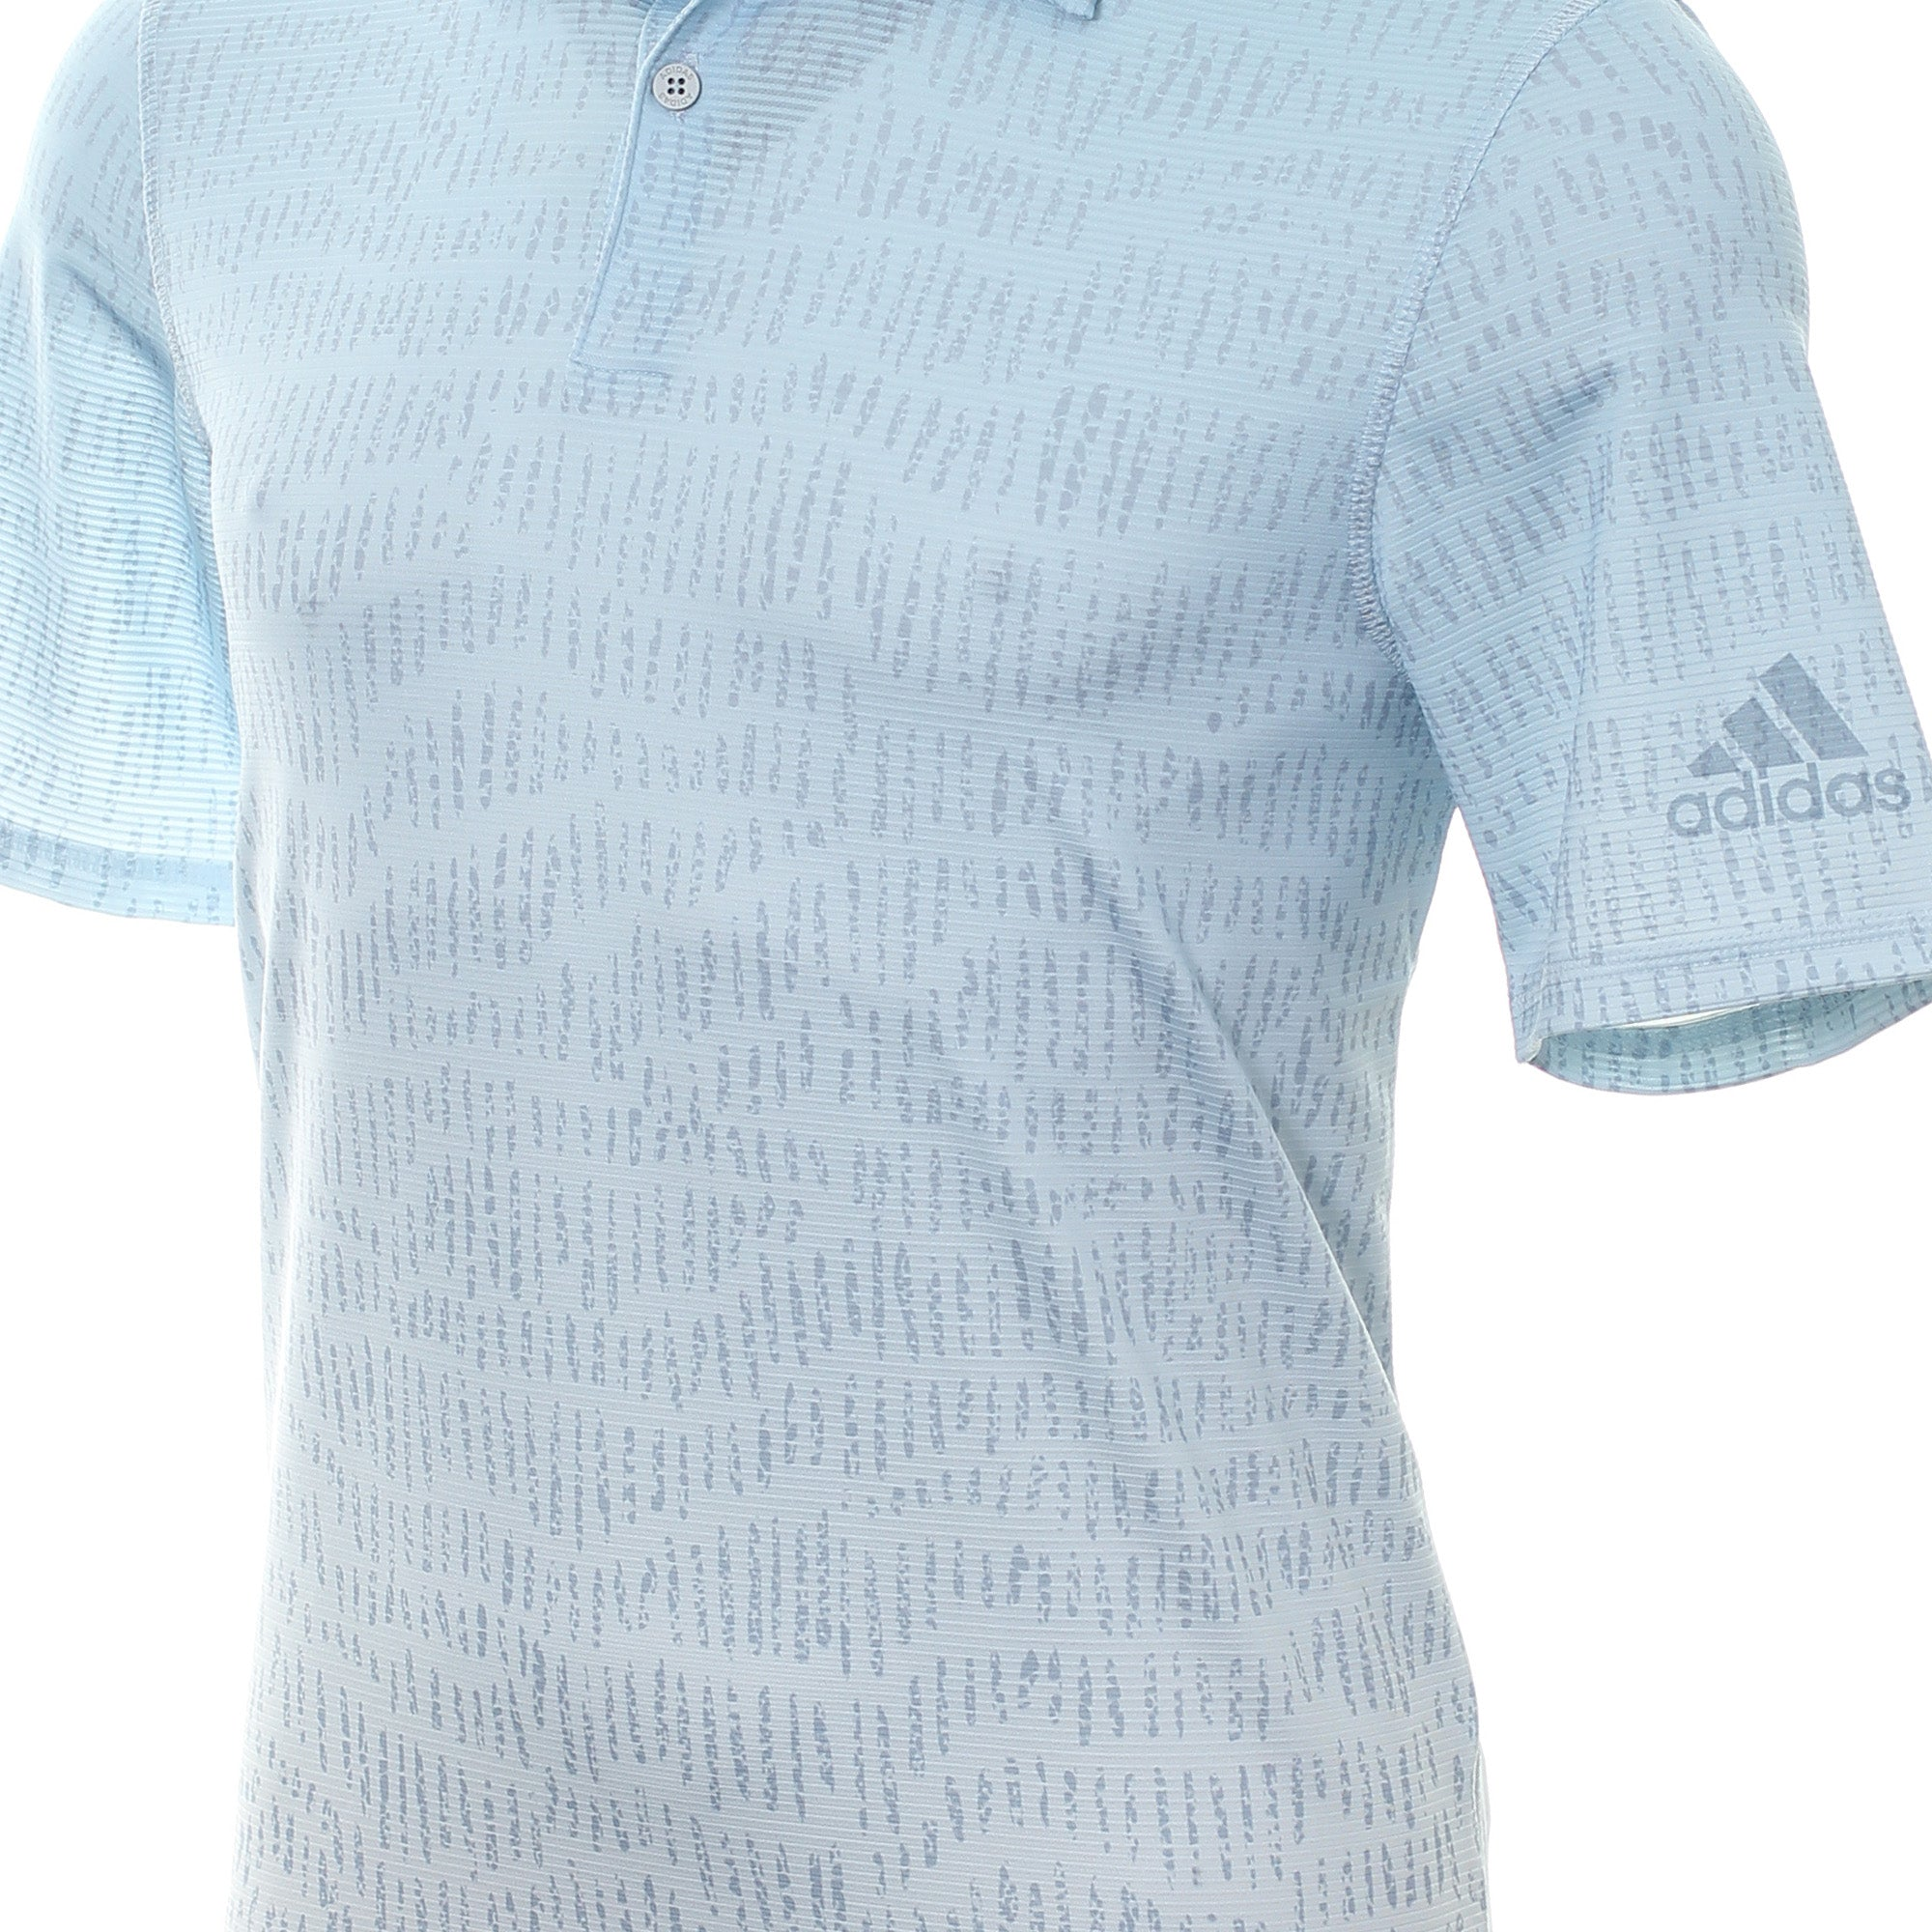 adidas Golf Primeblue Ltd Edition Blocked Shirt FJ6729